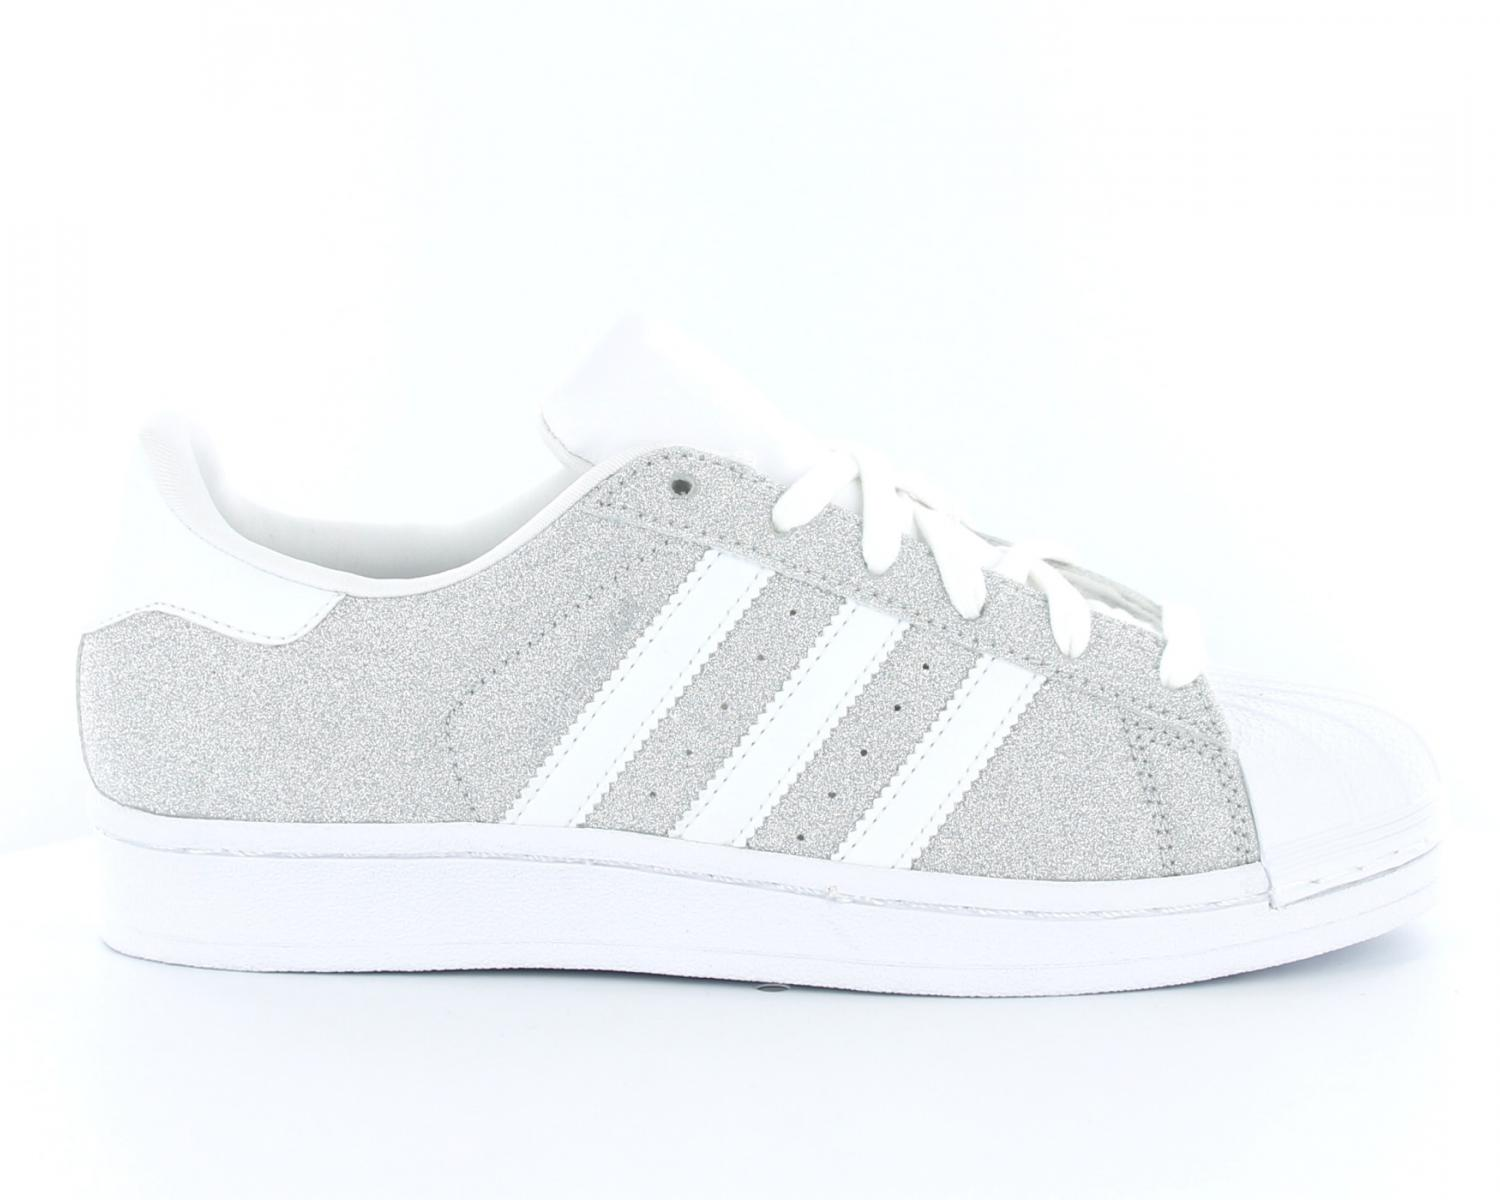 adidas Superstar MT W, Chaussures de Fitness Femme superstar blanche brillante superstar grise daim femme. Offre De Remise Adidas Superstar Femme Blanche ...